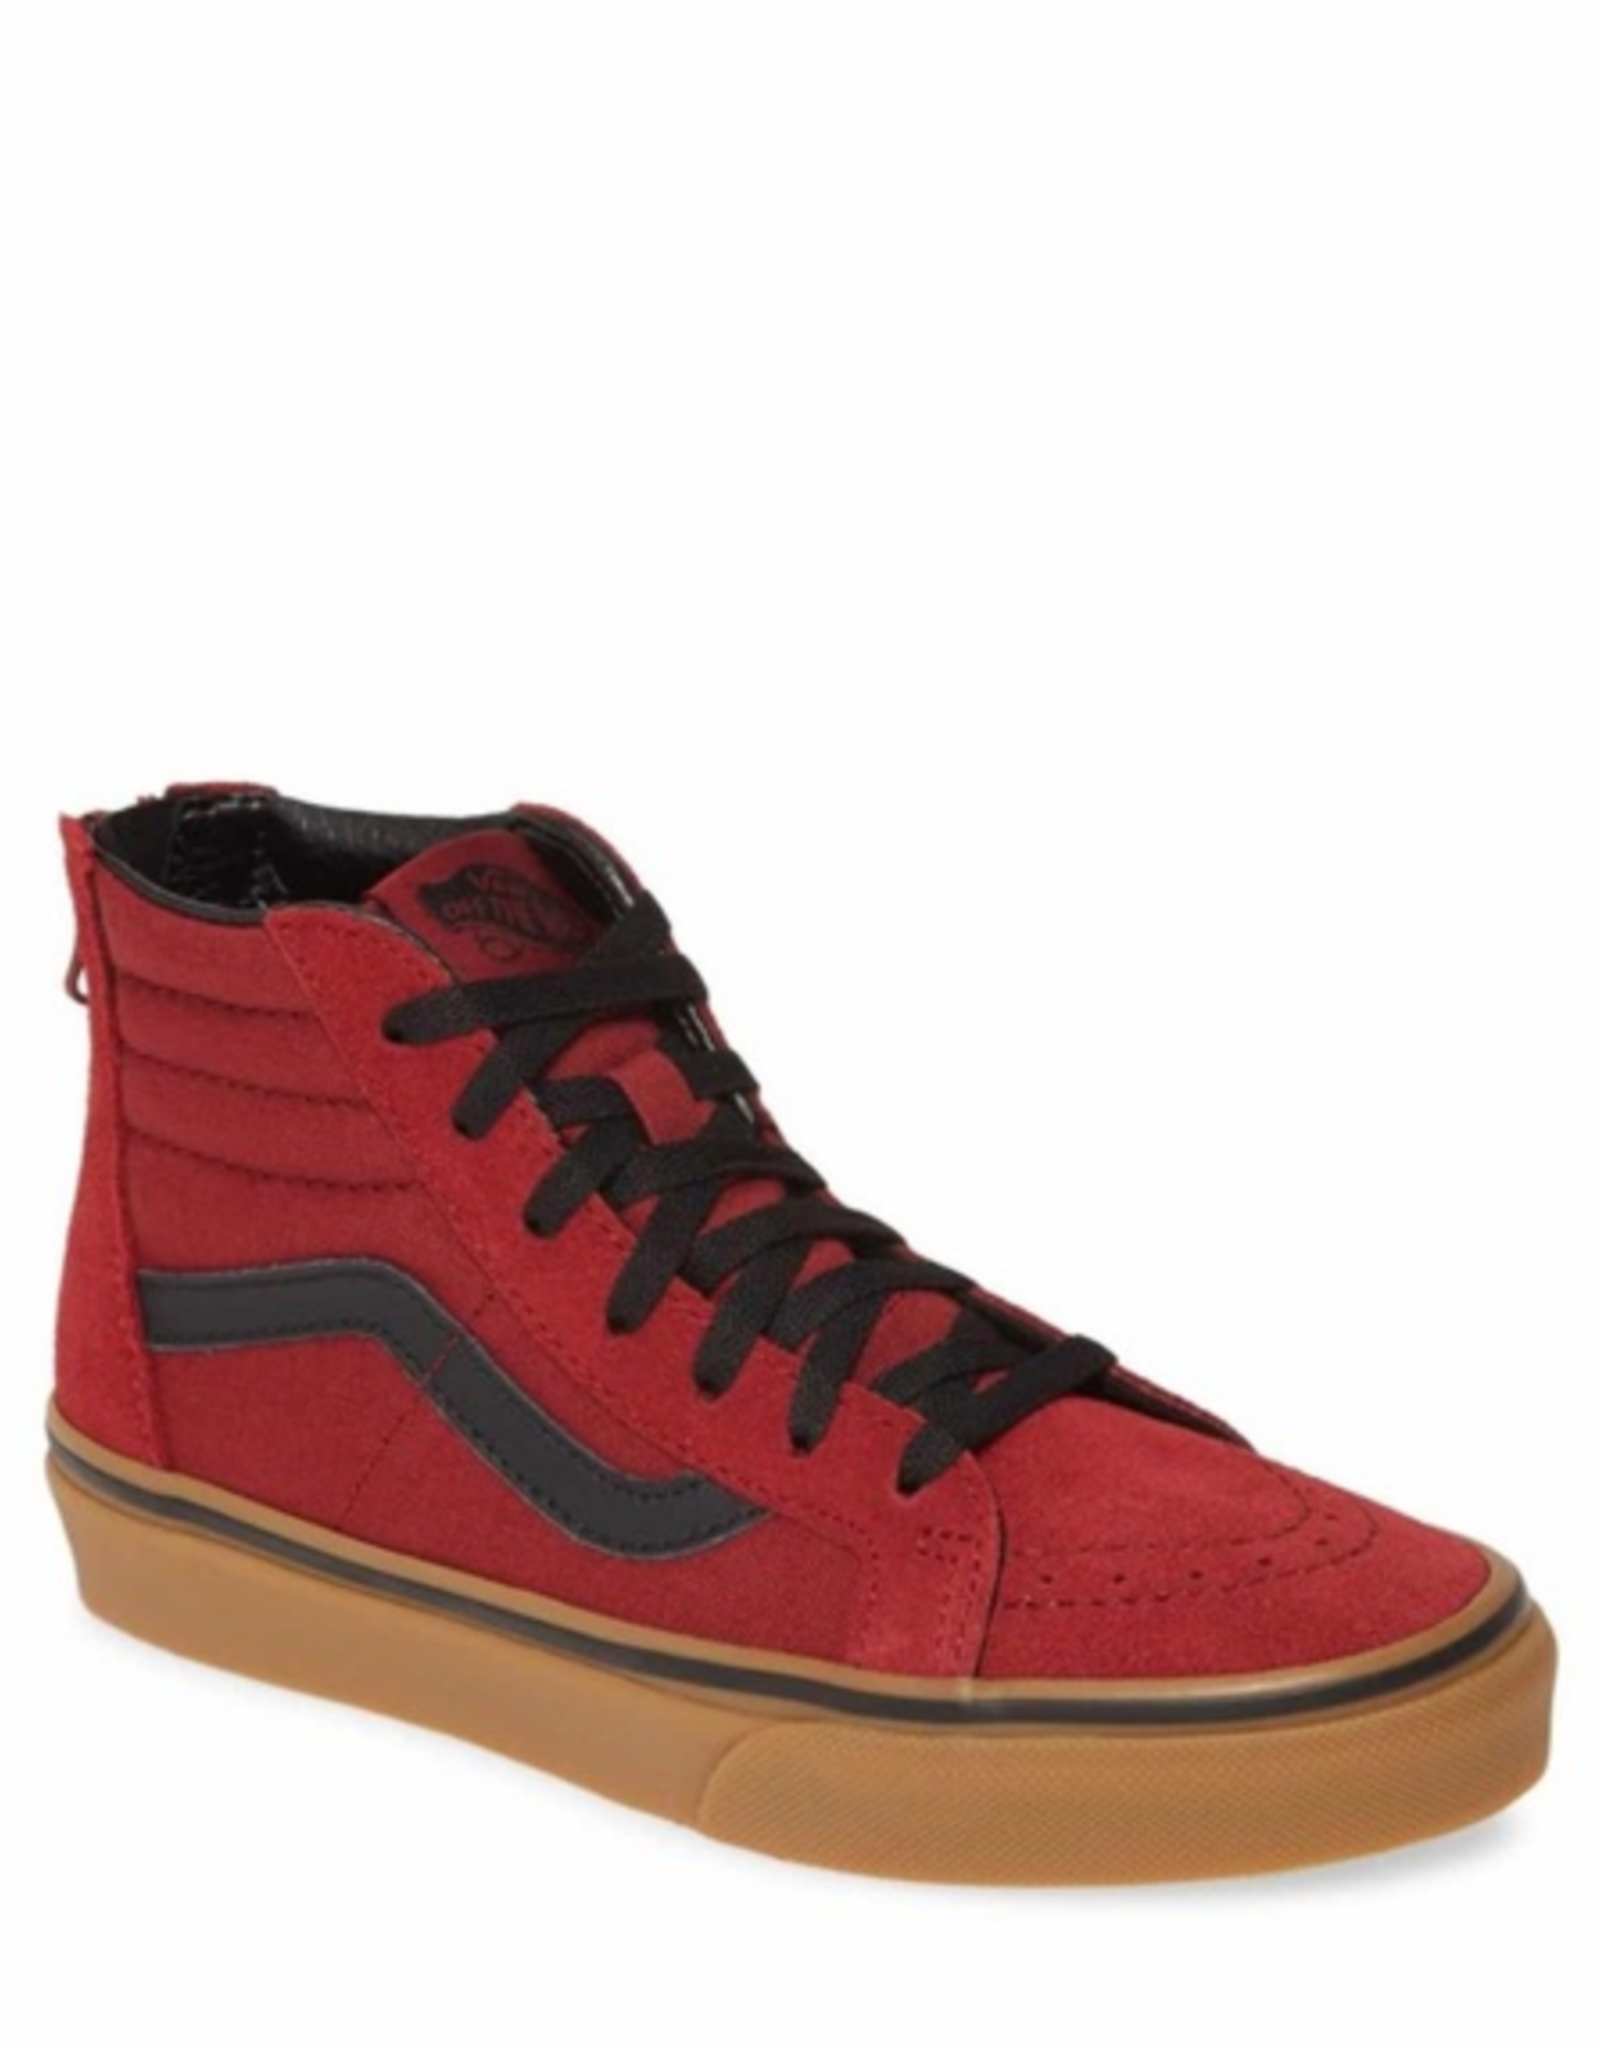 Vans VANS KIDS SK8-HI ZIP BIKING RED/GUM